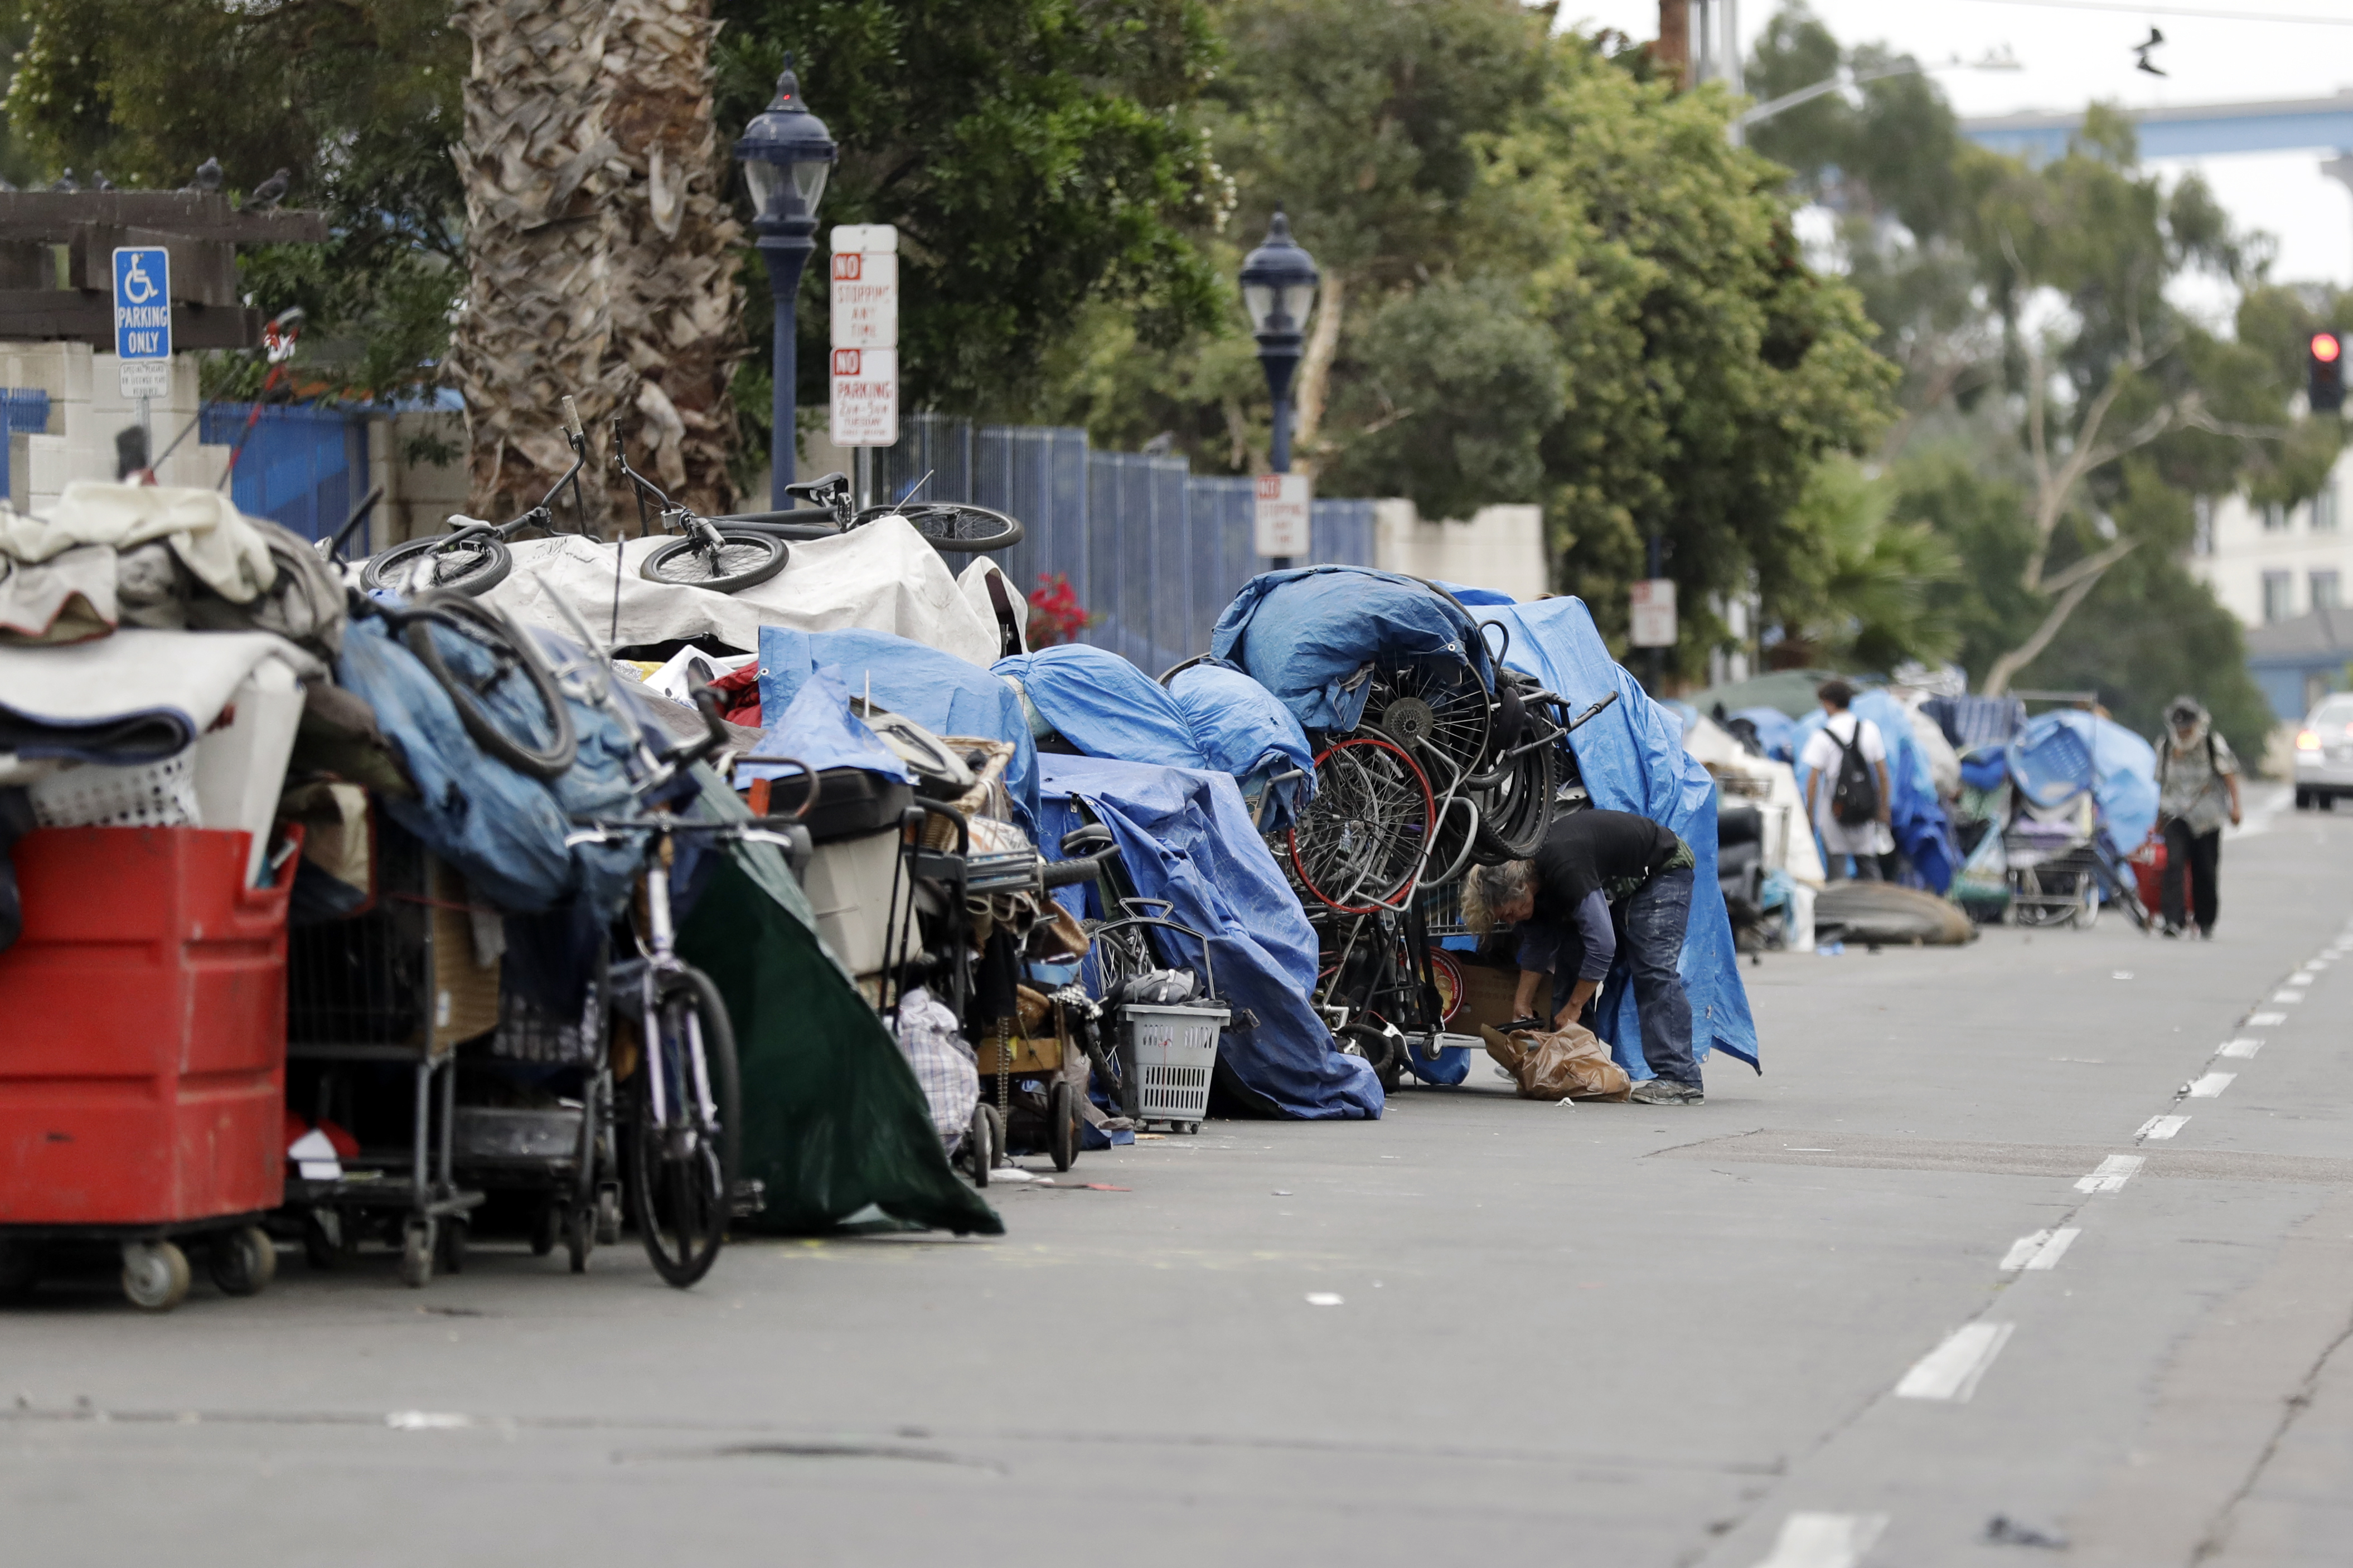 Supreme Court Considers Taking Up Case On Whether Homeless Can Legally Sleep In Public Places